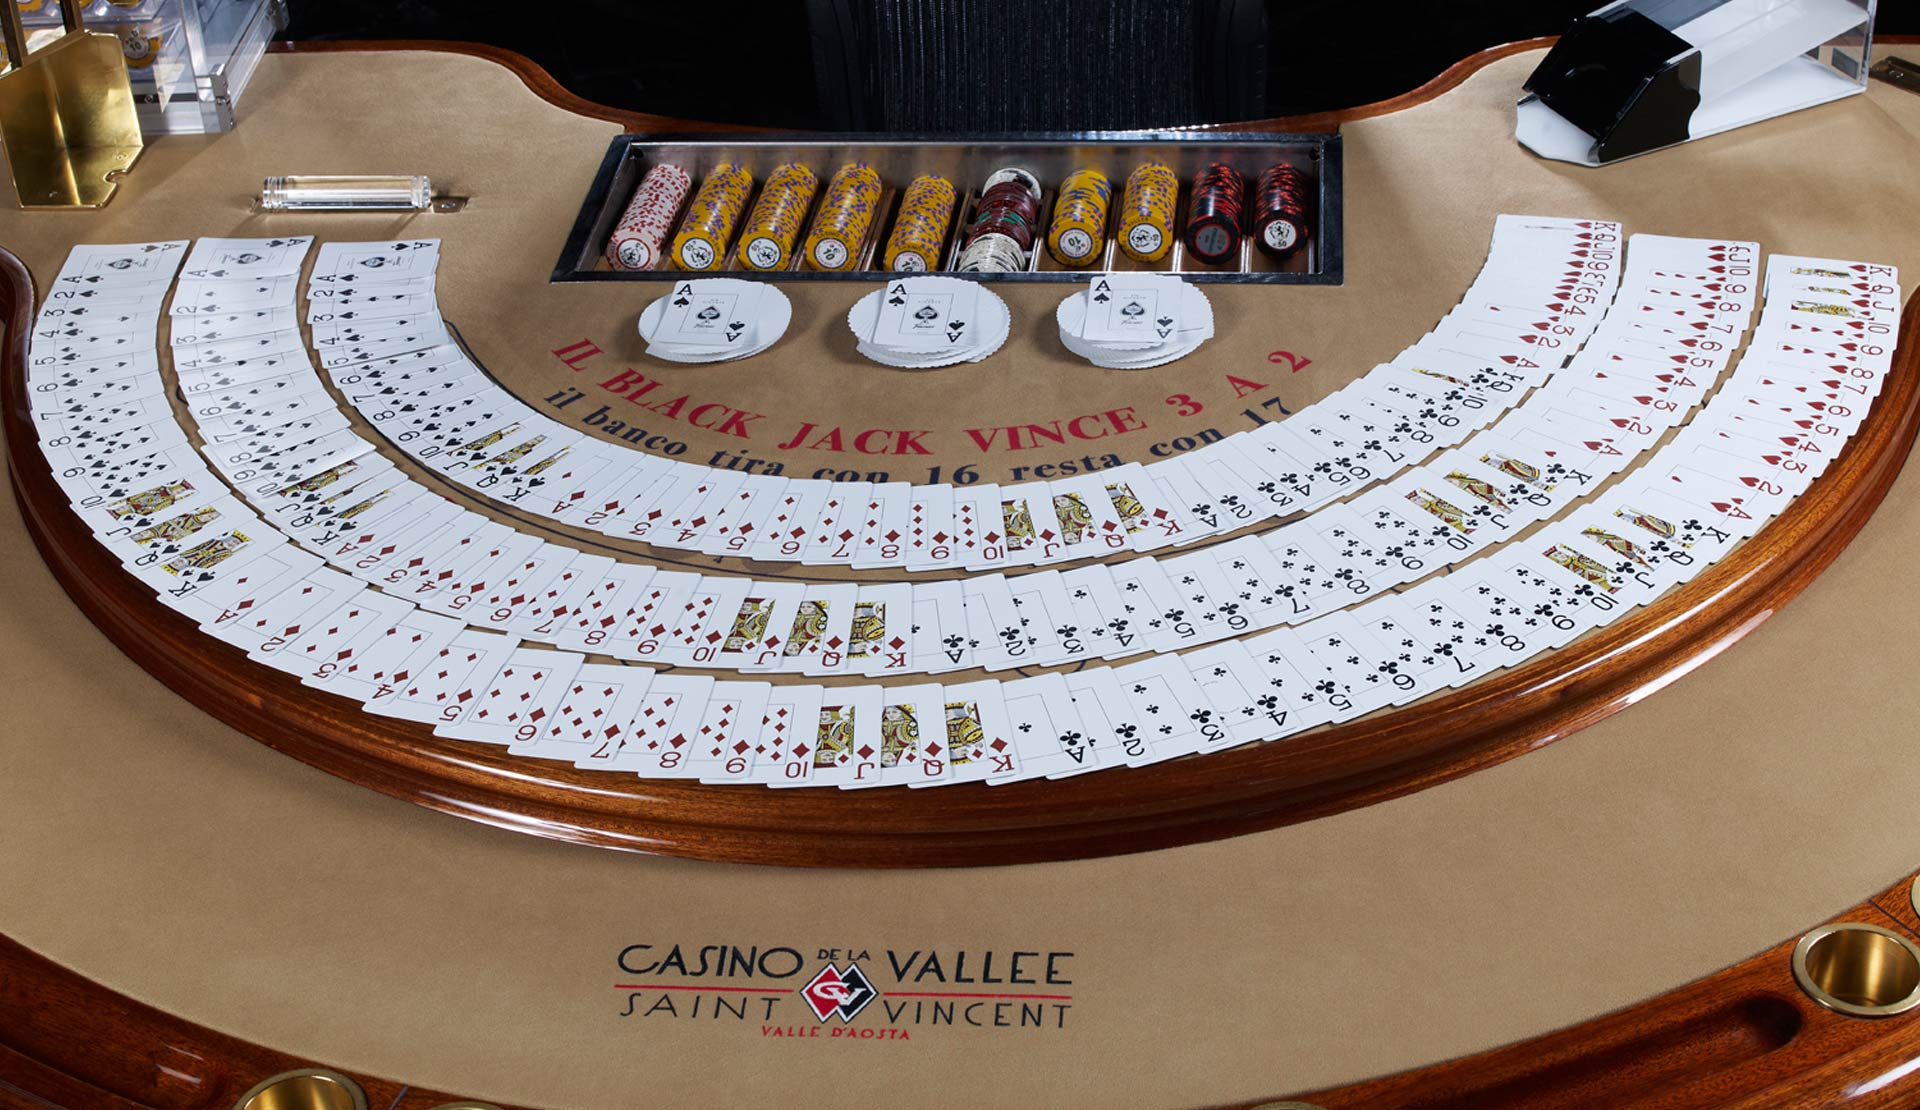 blackjack casino di saint vincent